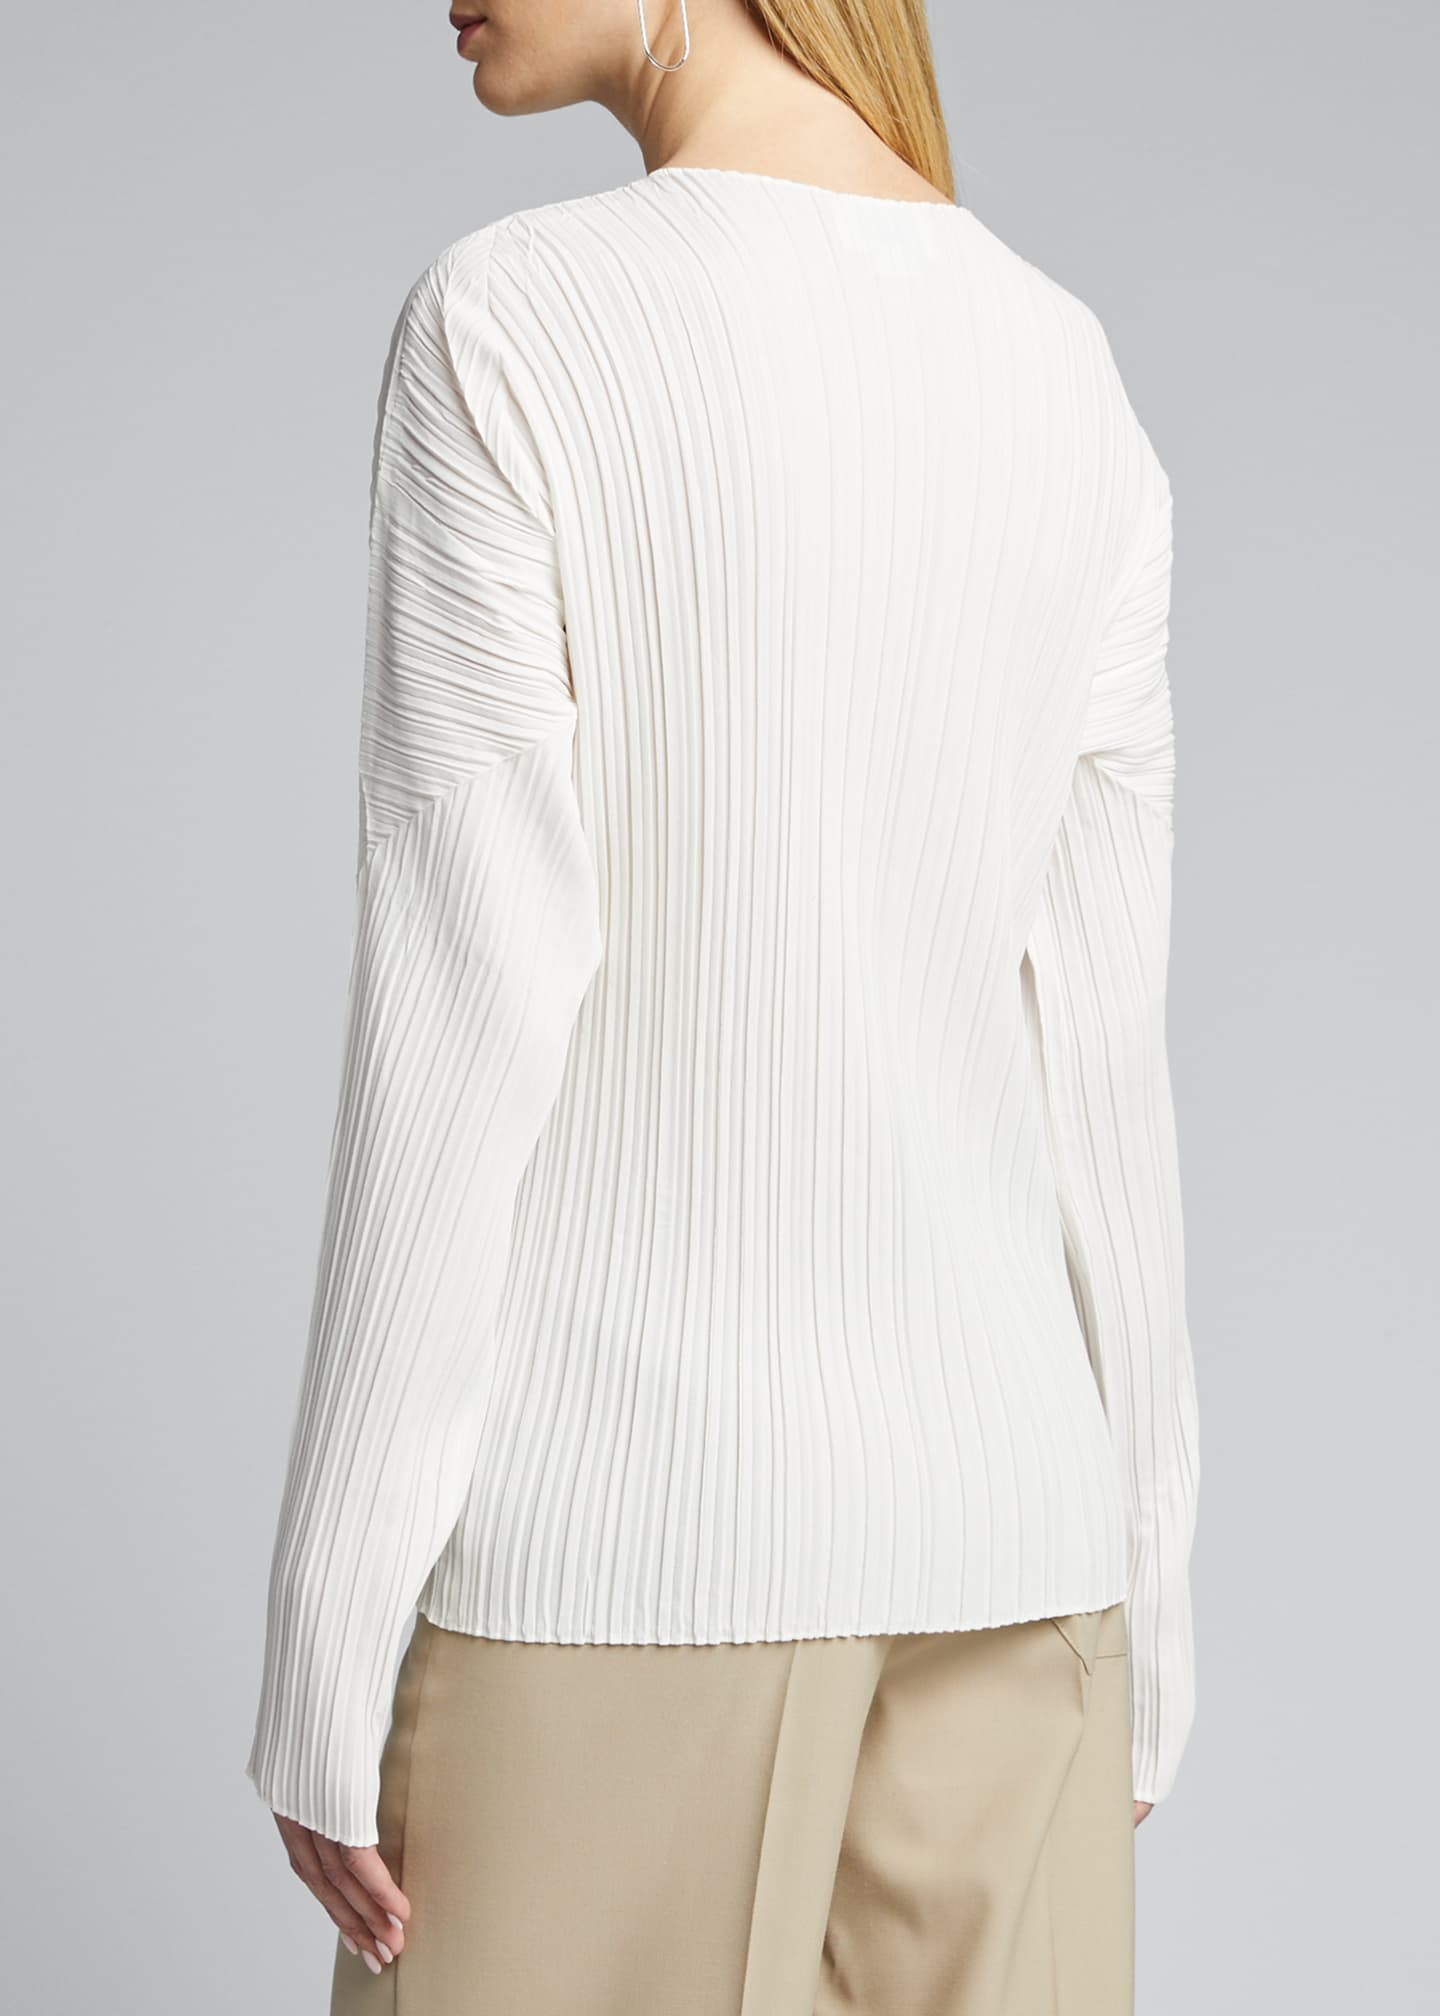 Image 2 of 5: Long-Sleeve Mushroom Pleated Top